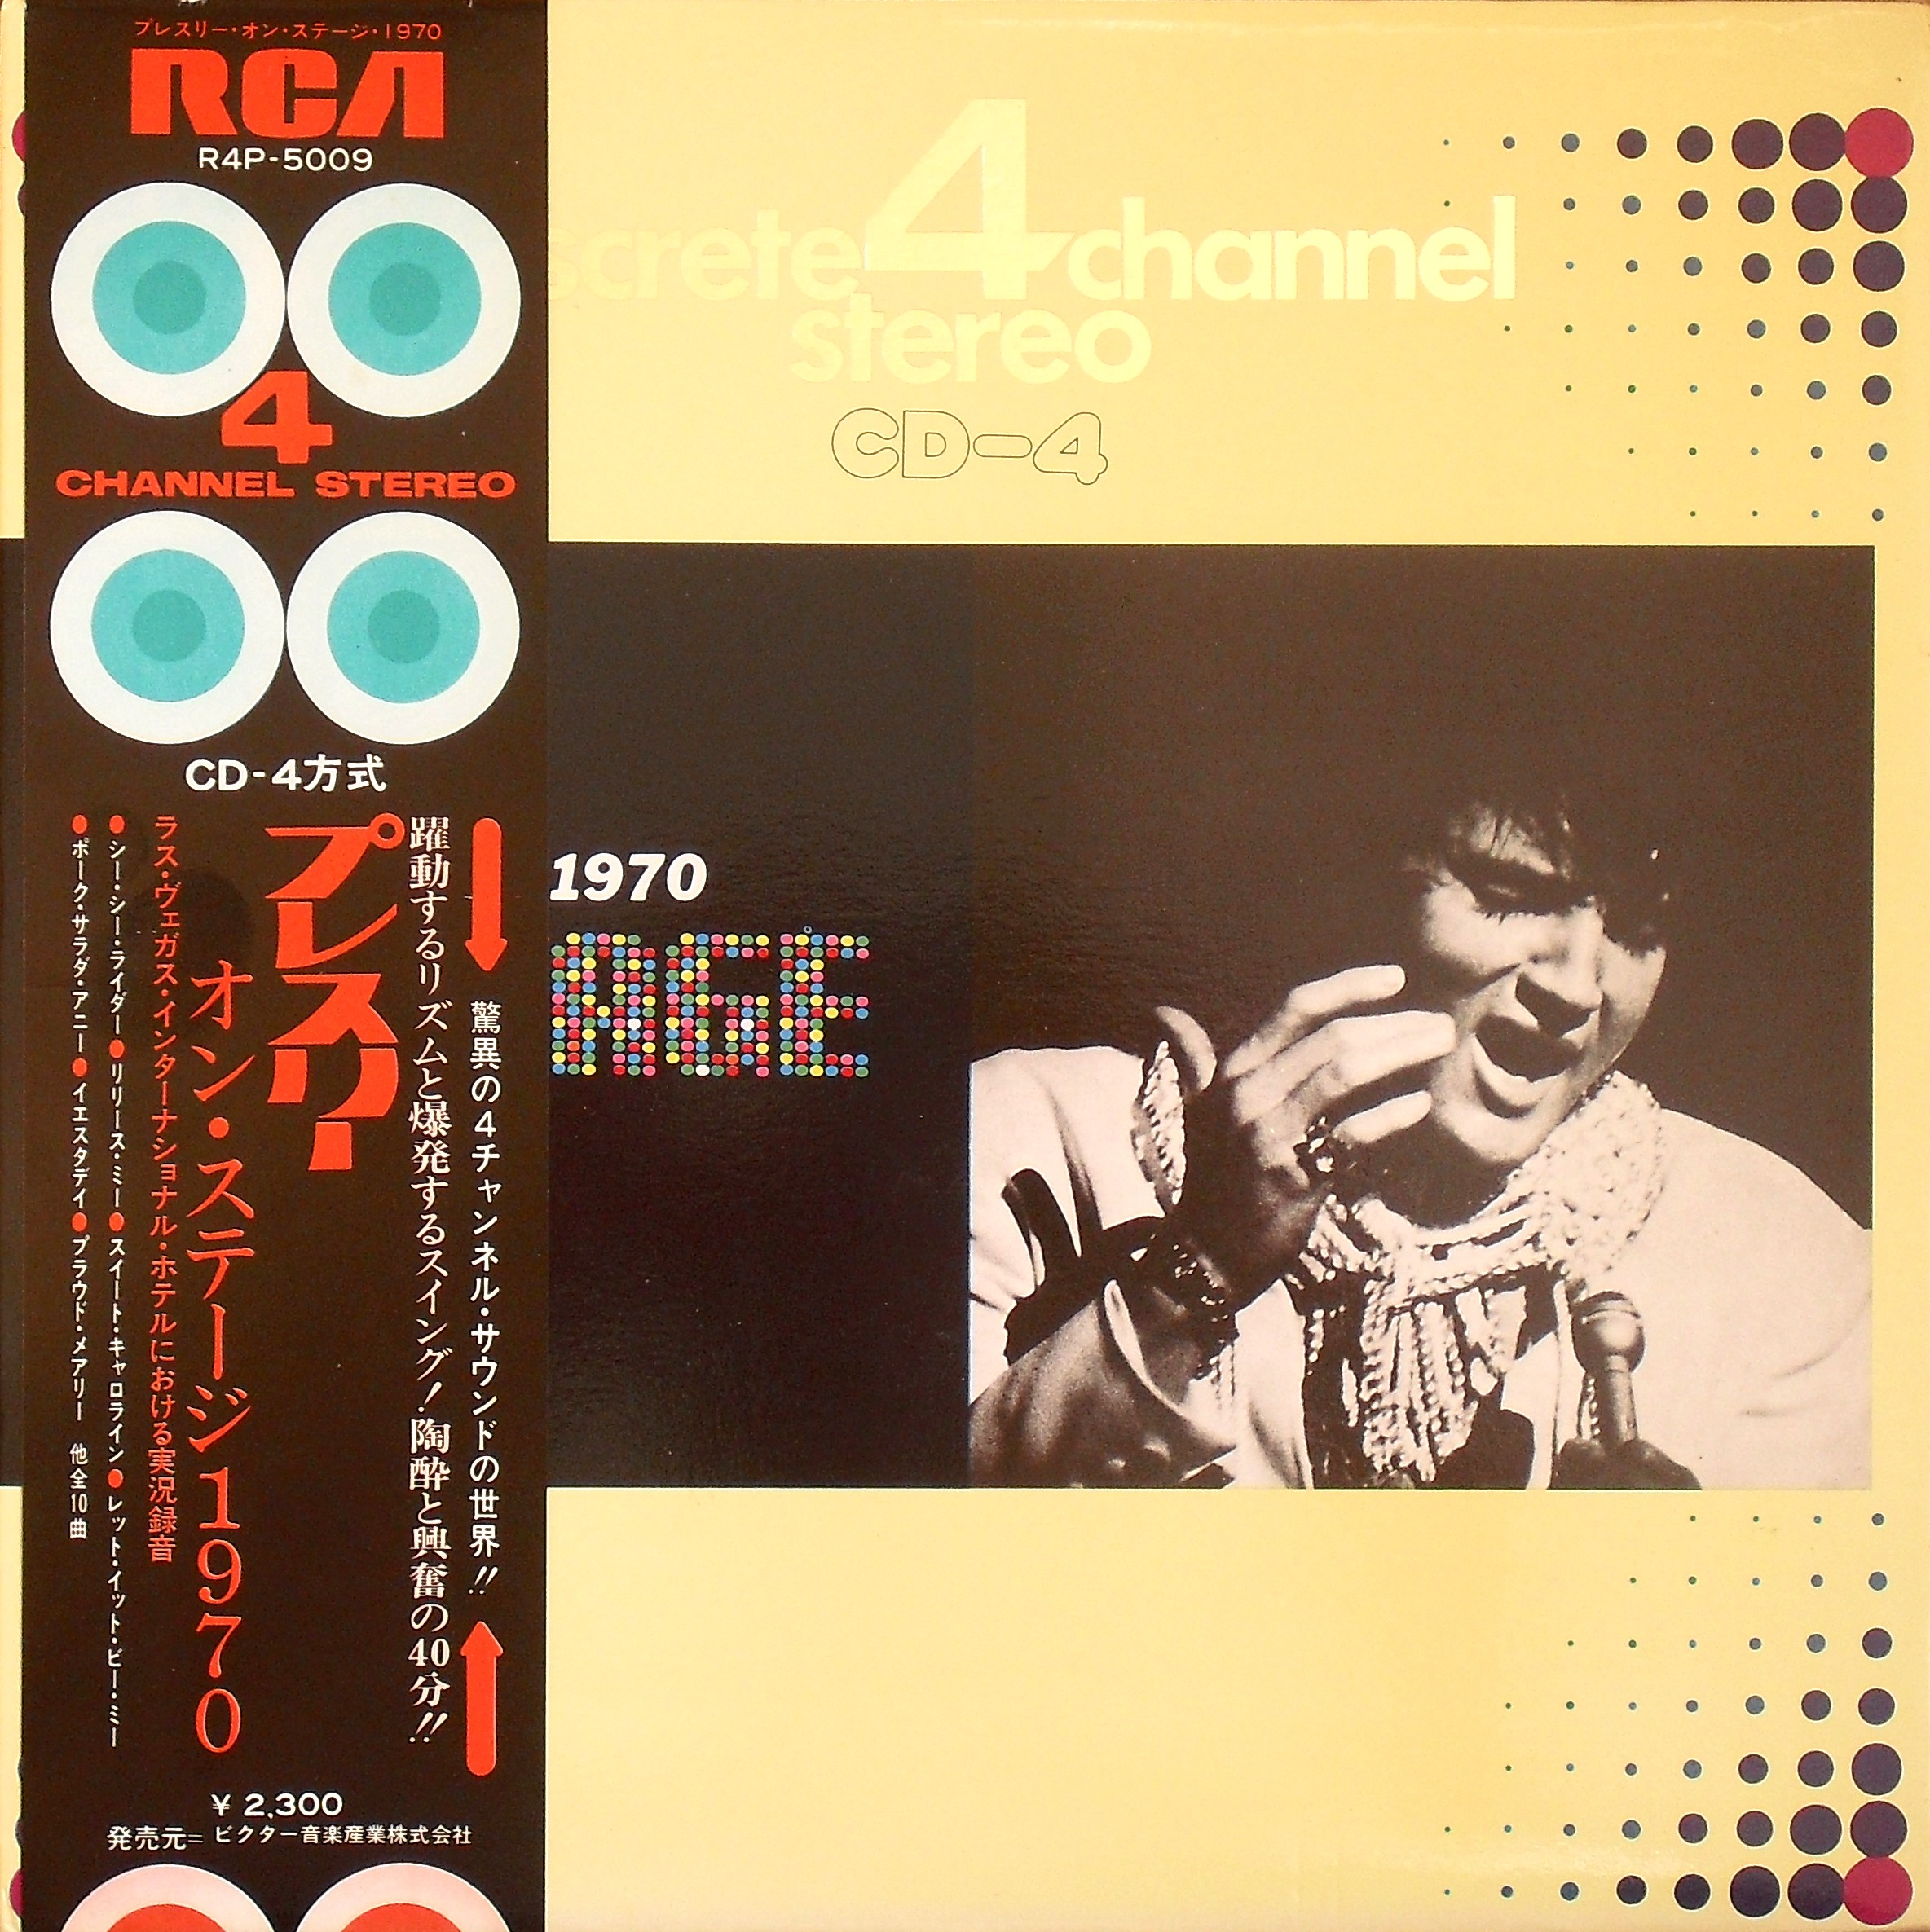 ON STAGE - FEBRUARY, 1970 01...lvuw4